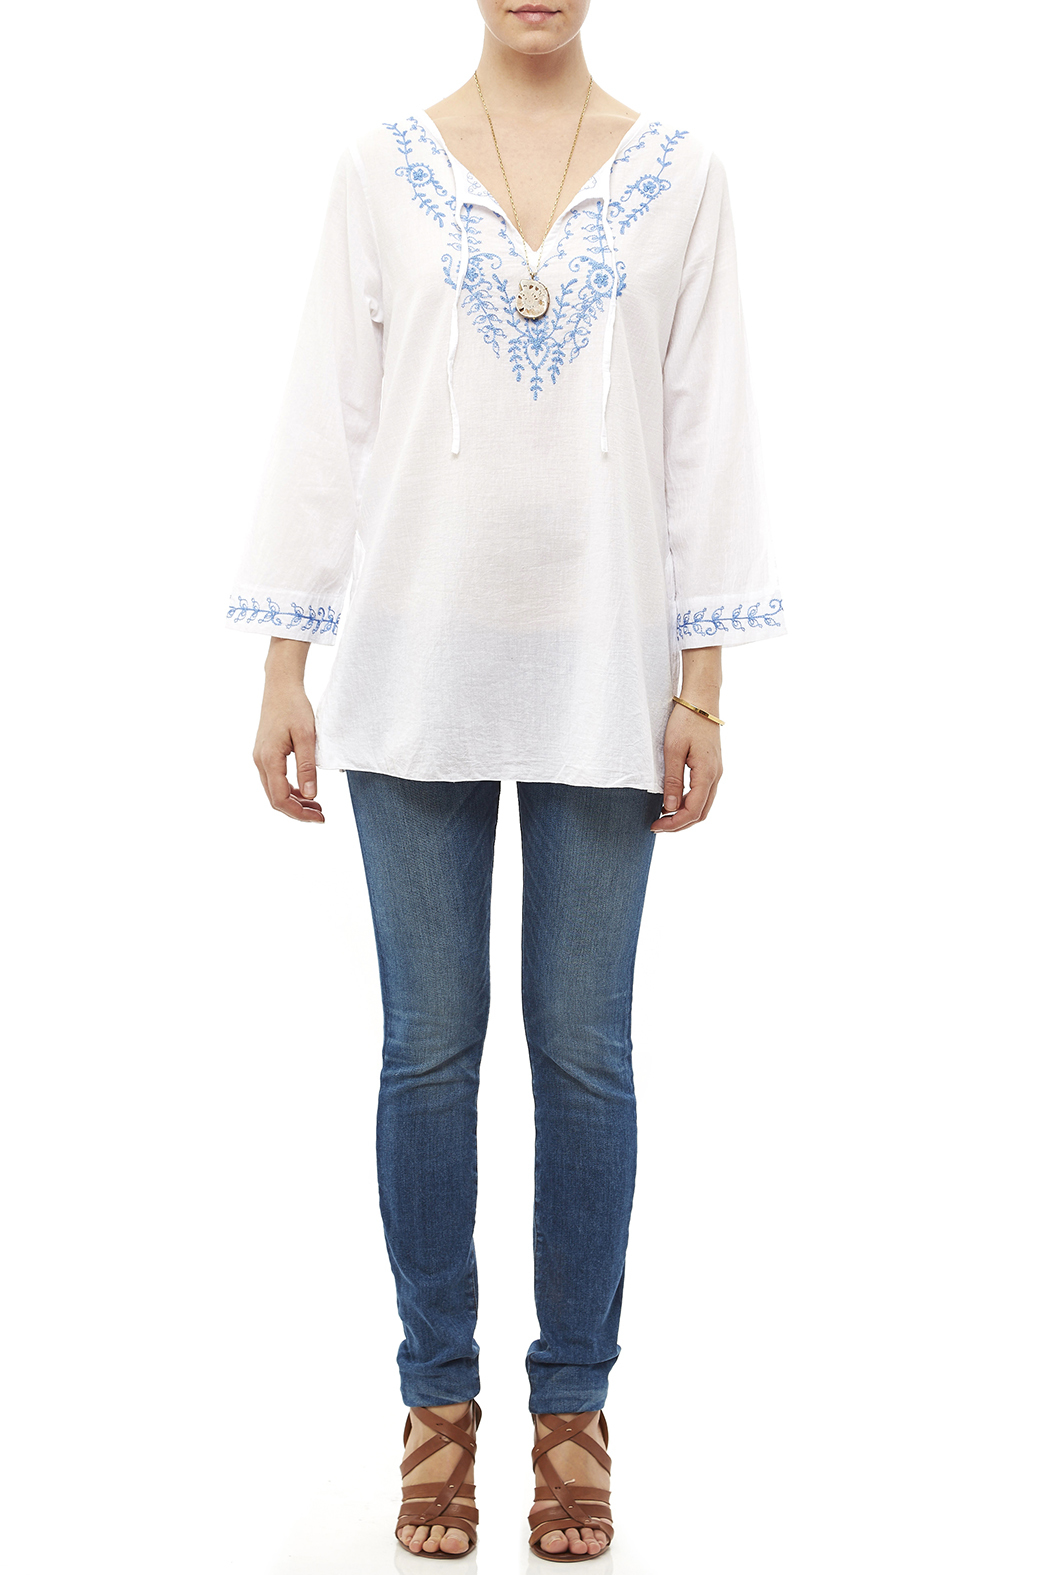 Fresco by Nomadic Traders White Embroidered Blouse - Front Full Image